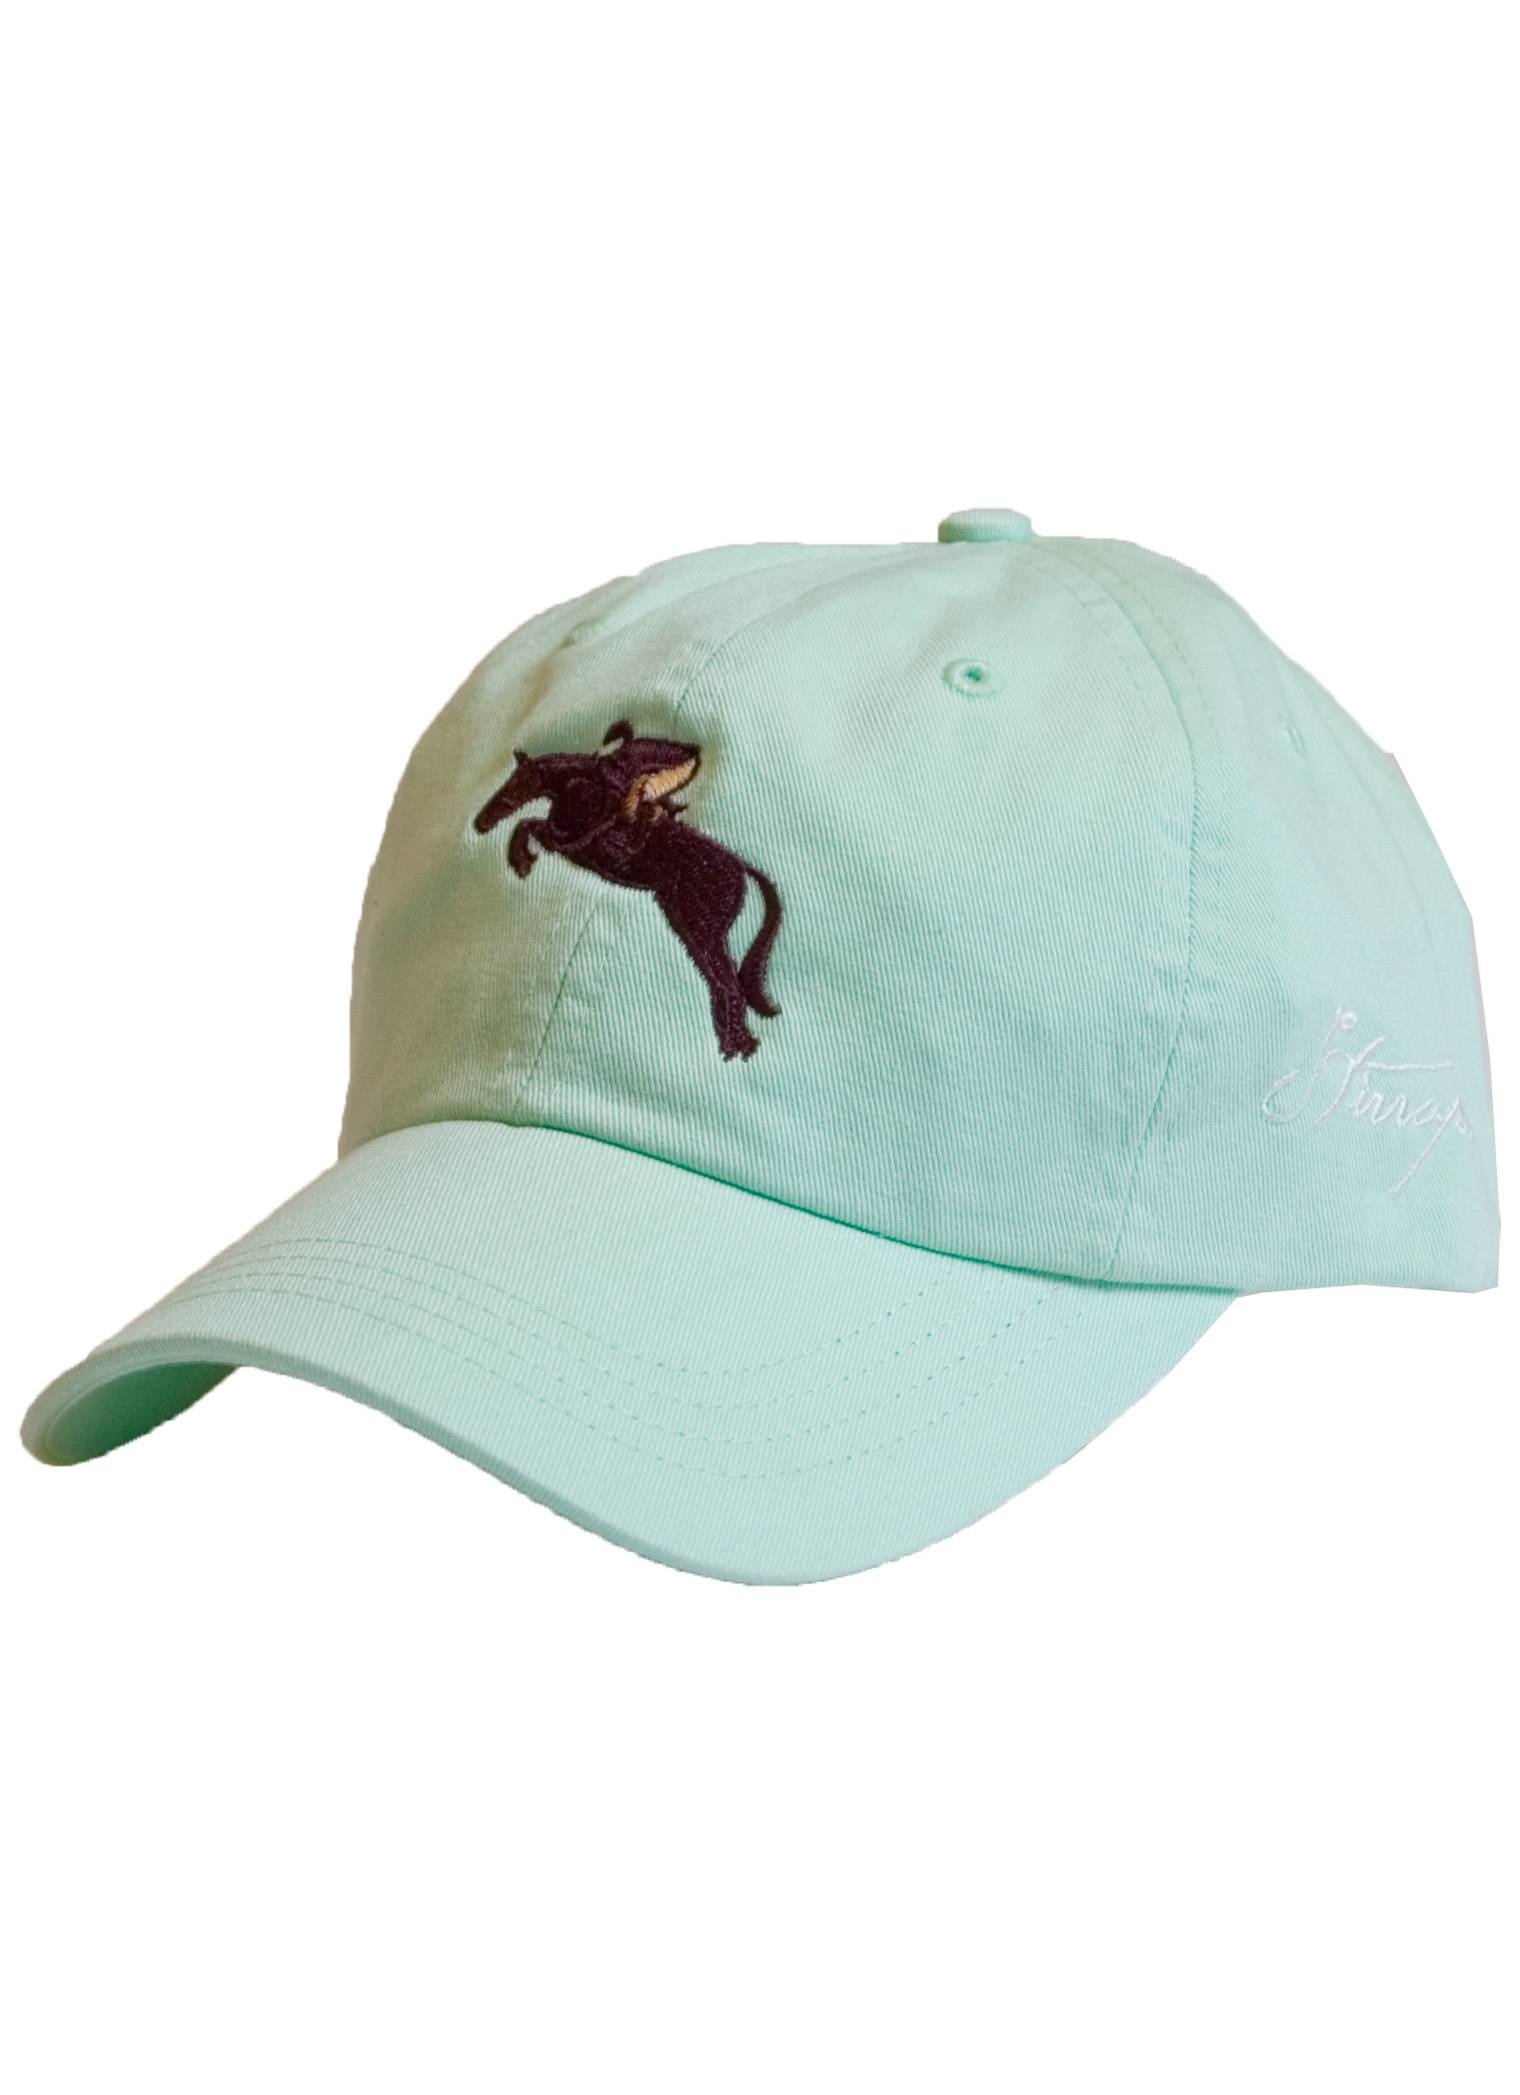 Stirrups Jumping Horse Cotton Twill Seersucker Cap - Ladies